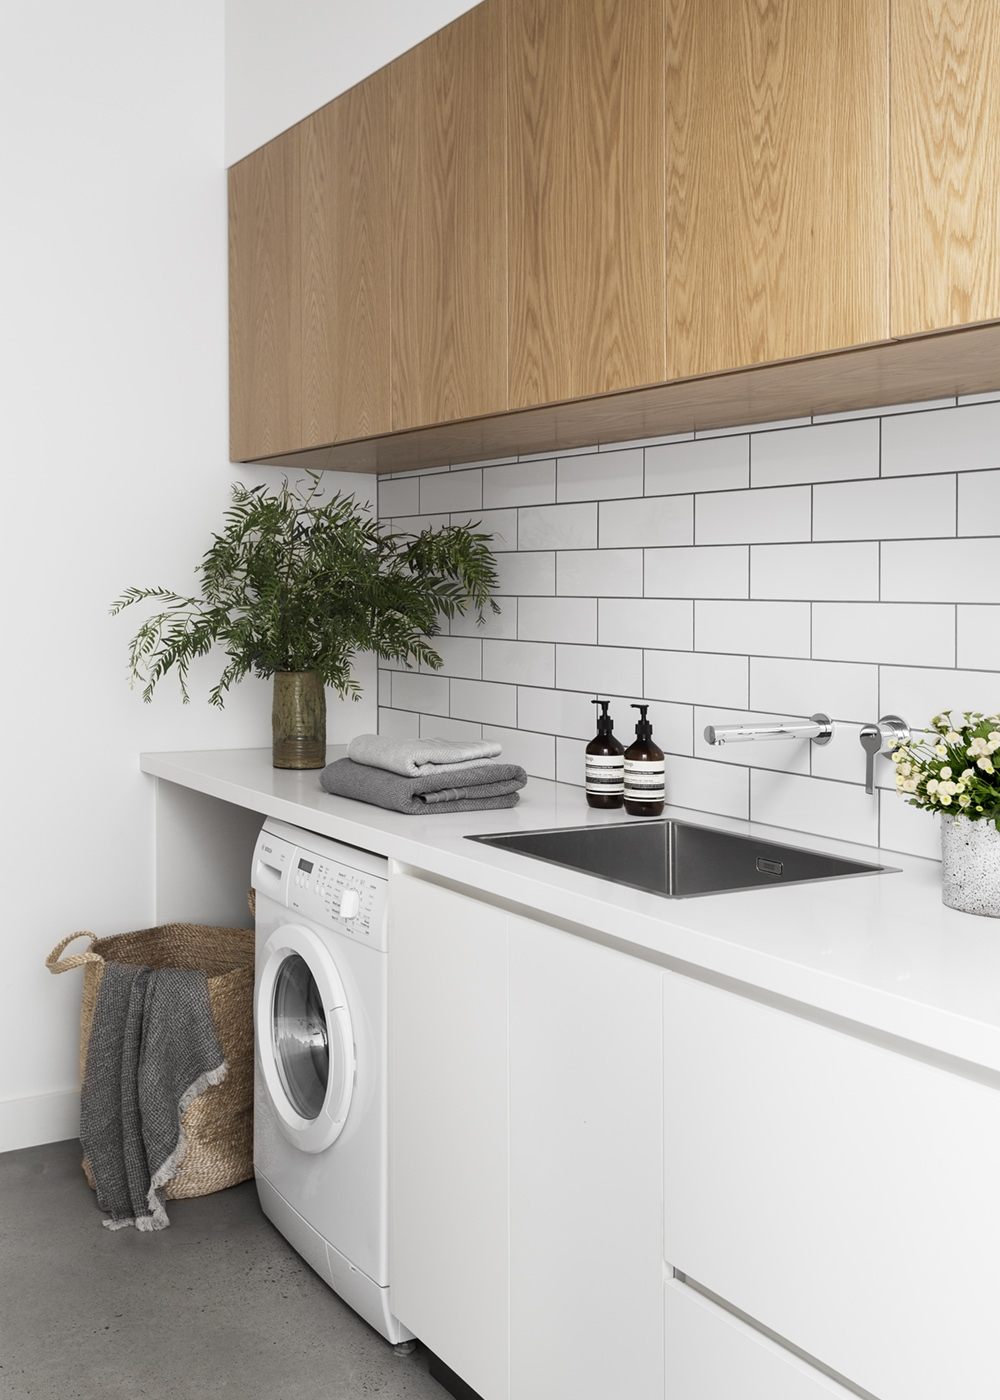 Design Tip:    Laundry habits and requirements vary from household to household. List core items and appliances that need to be allowed for in the design process to ensure everything has a place. For Bloomfield Road, an allowance was made for a dryer they felt their growing family didn't need just yet.